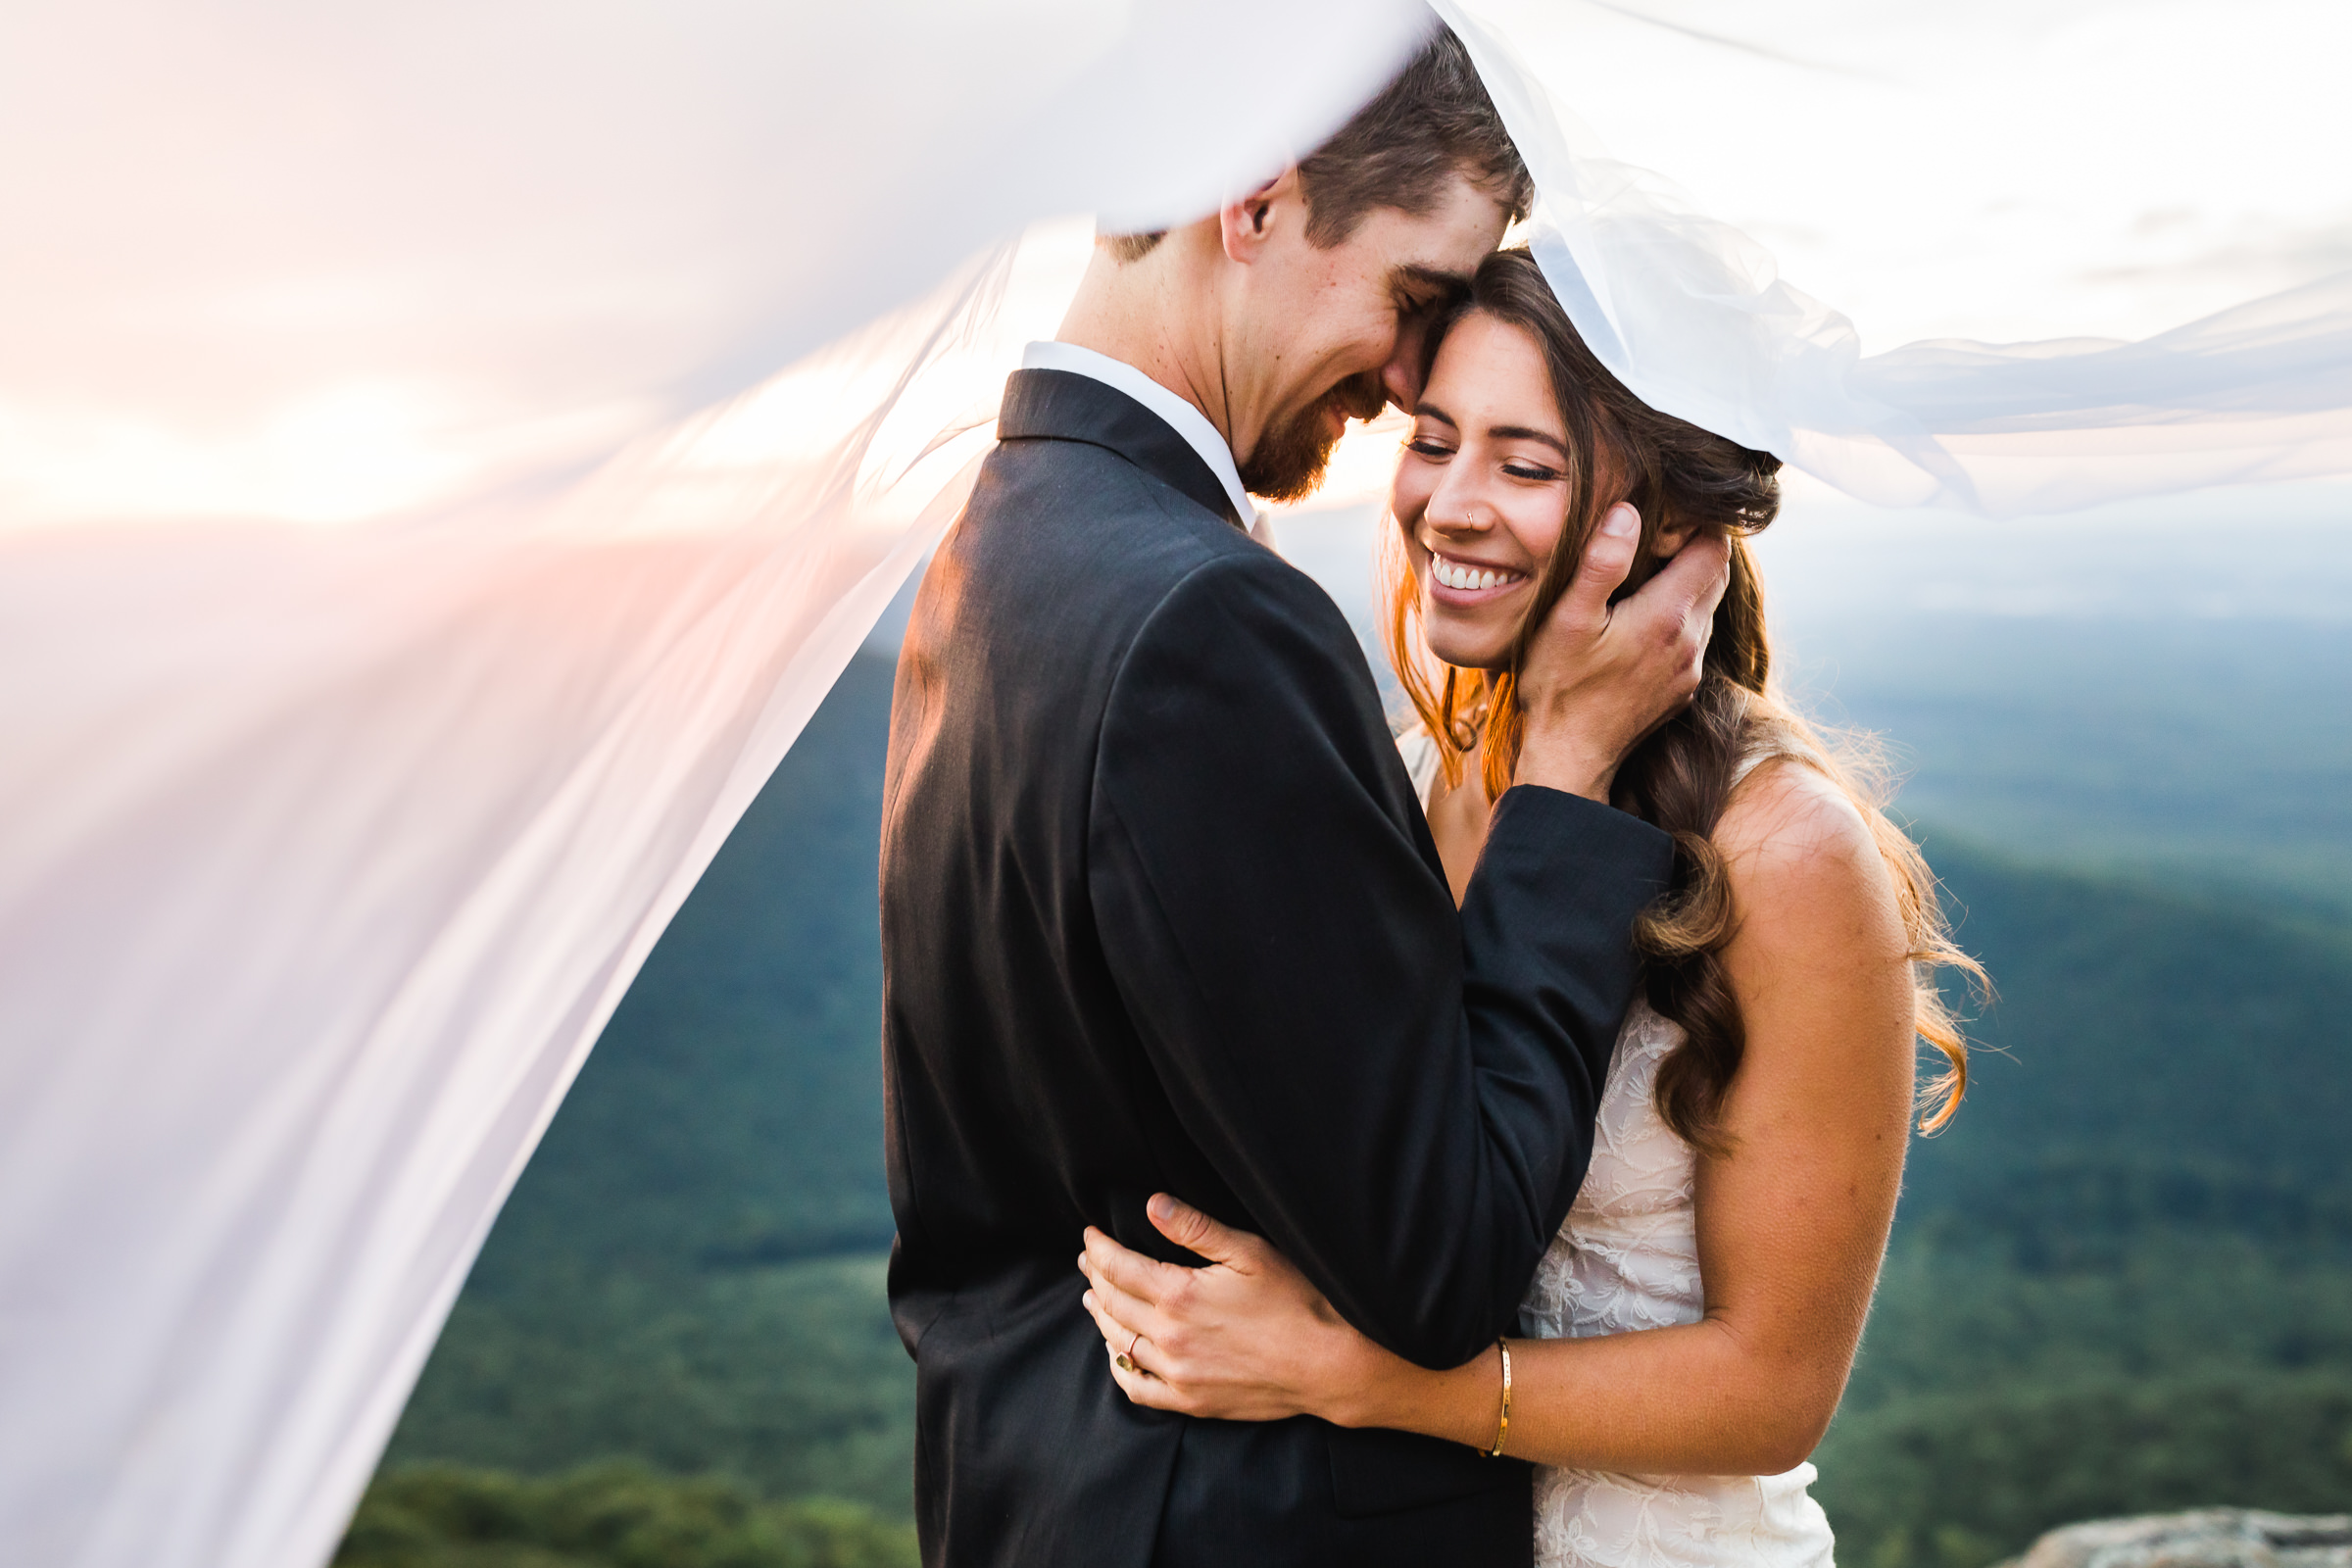 Elopement couple moment under billowing tent - photo by Xiaoqi Li Photography